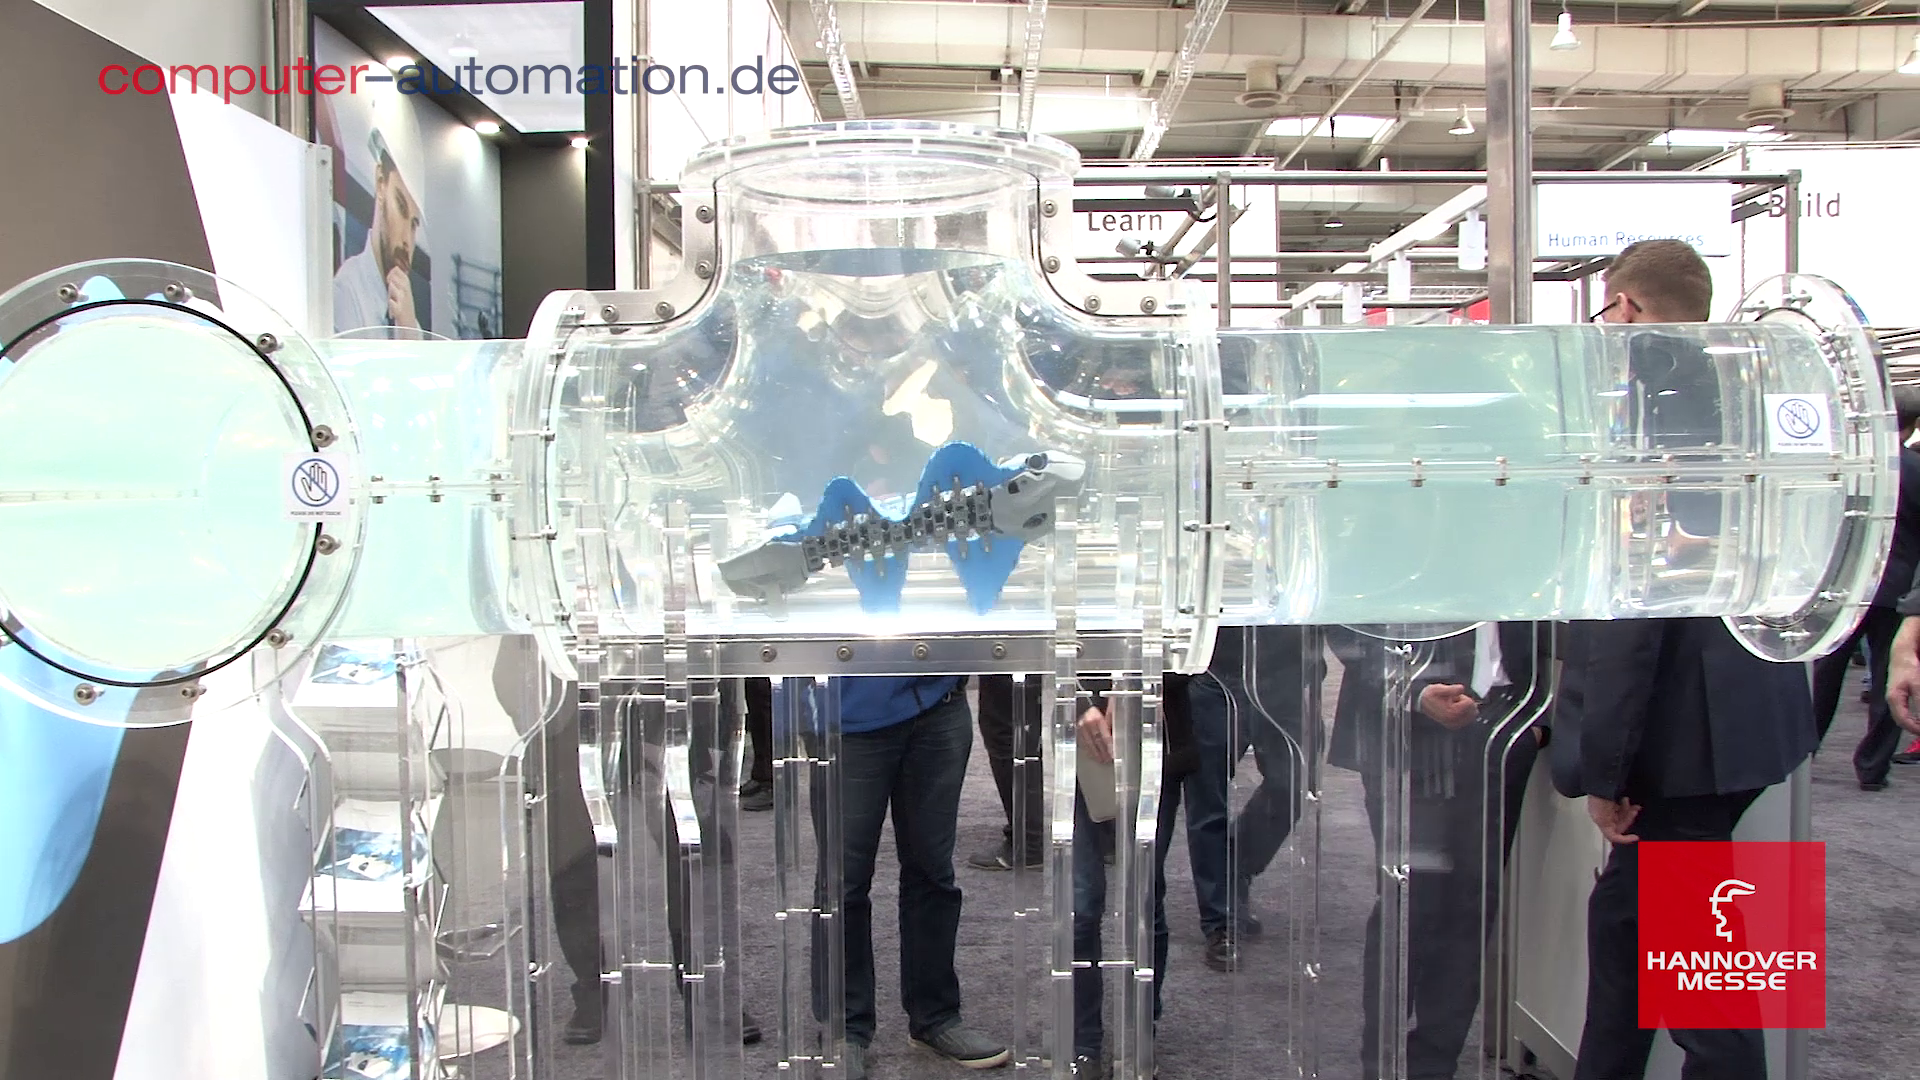 Hannover Messe 2019: Der Video-Rückblick